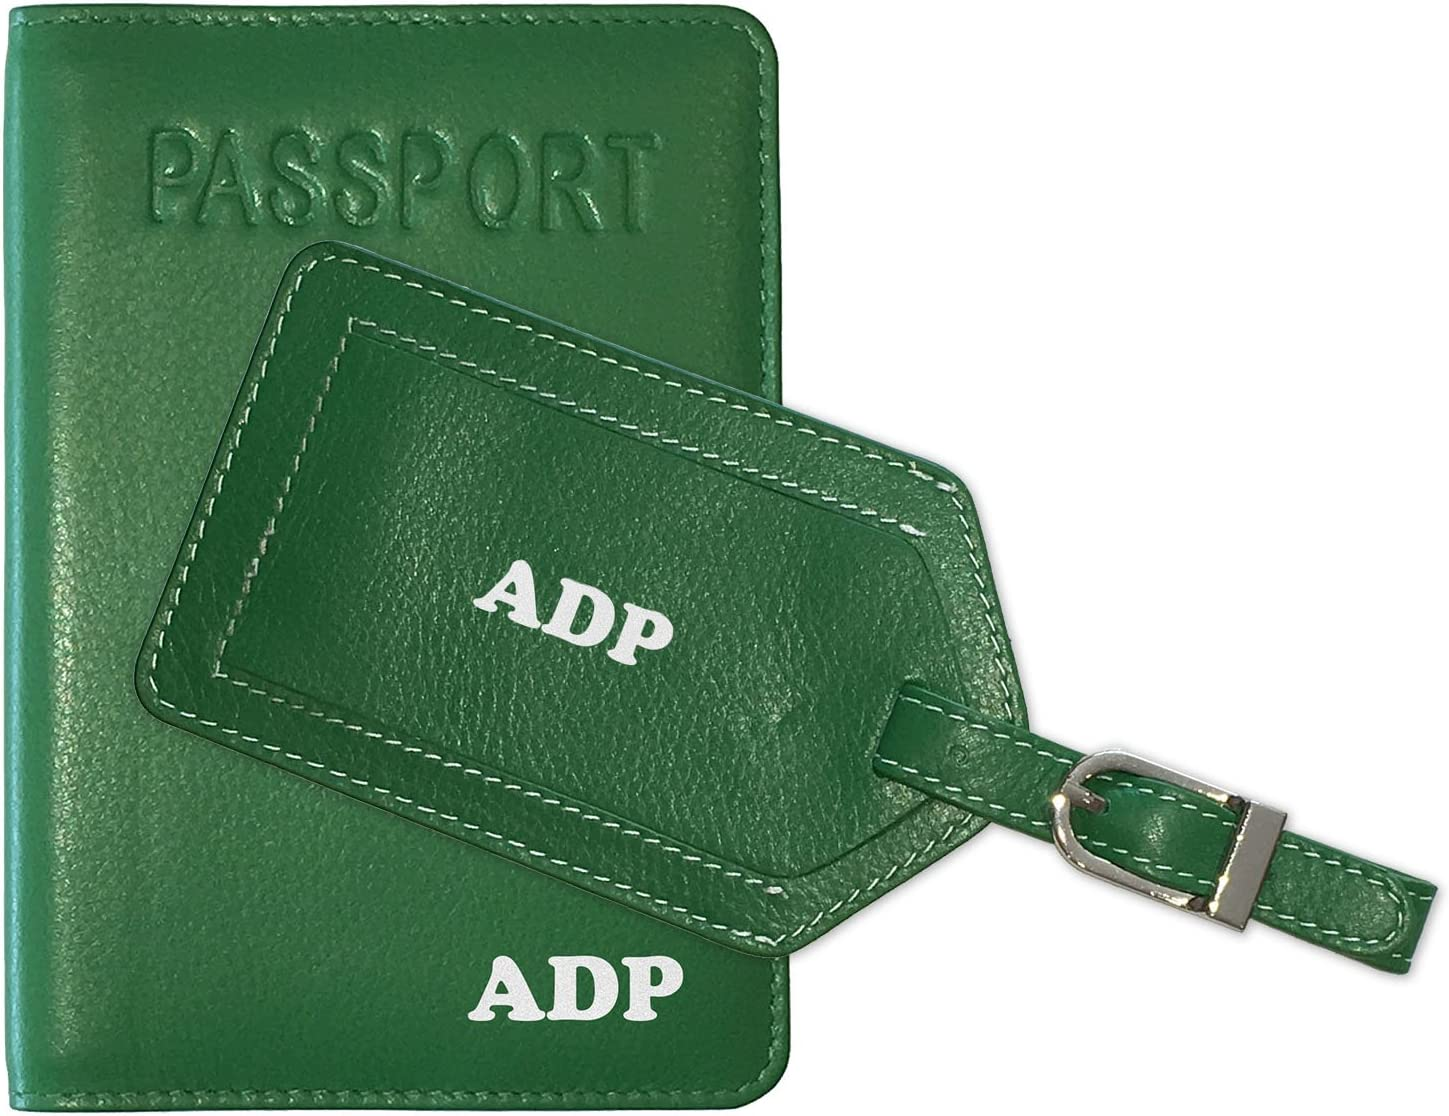 Personalized Monogrammed Black Leather RFID Passport Cover Holder and Luggage Tag